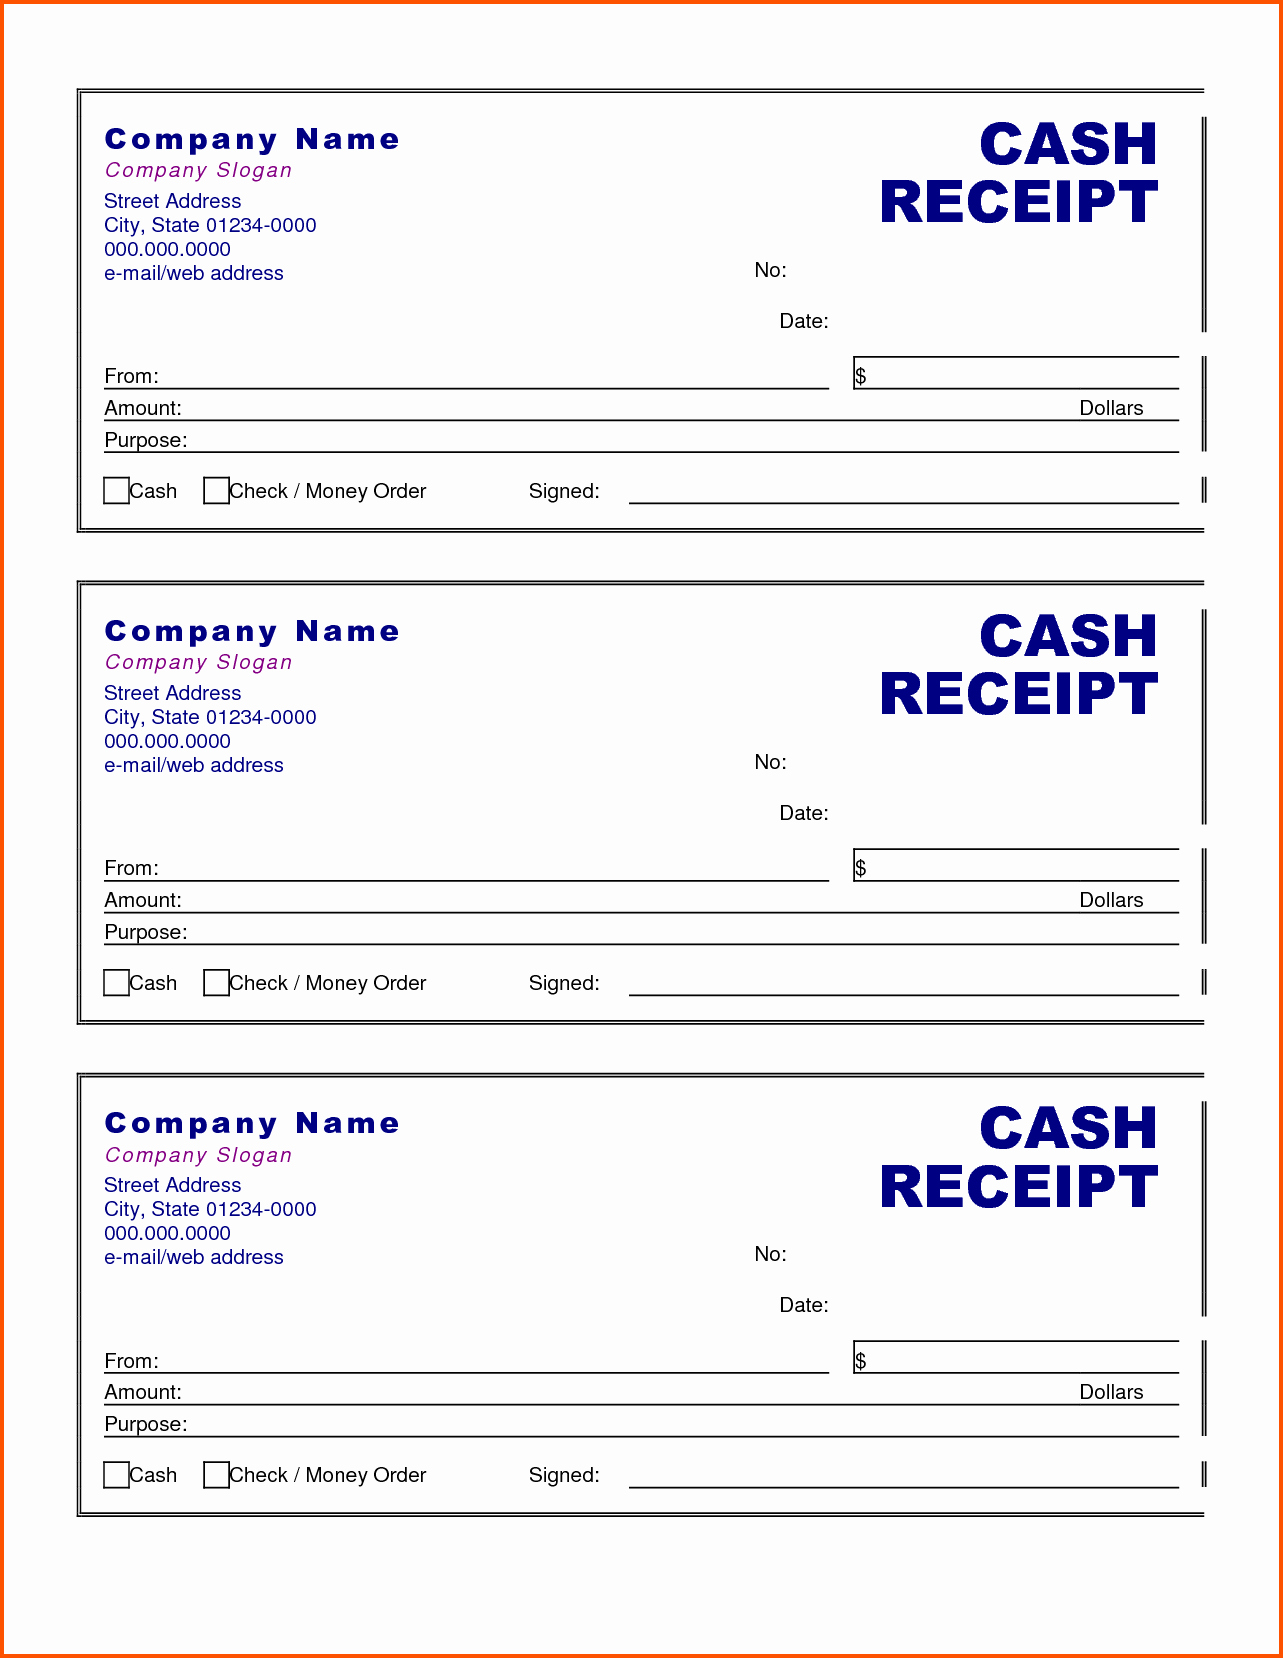 Cash Receipts Template Excel Awesome Cash Receipt form Examples Vatansun